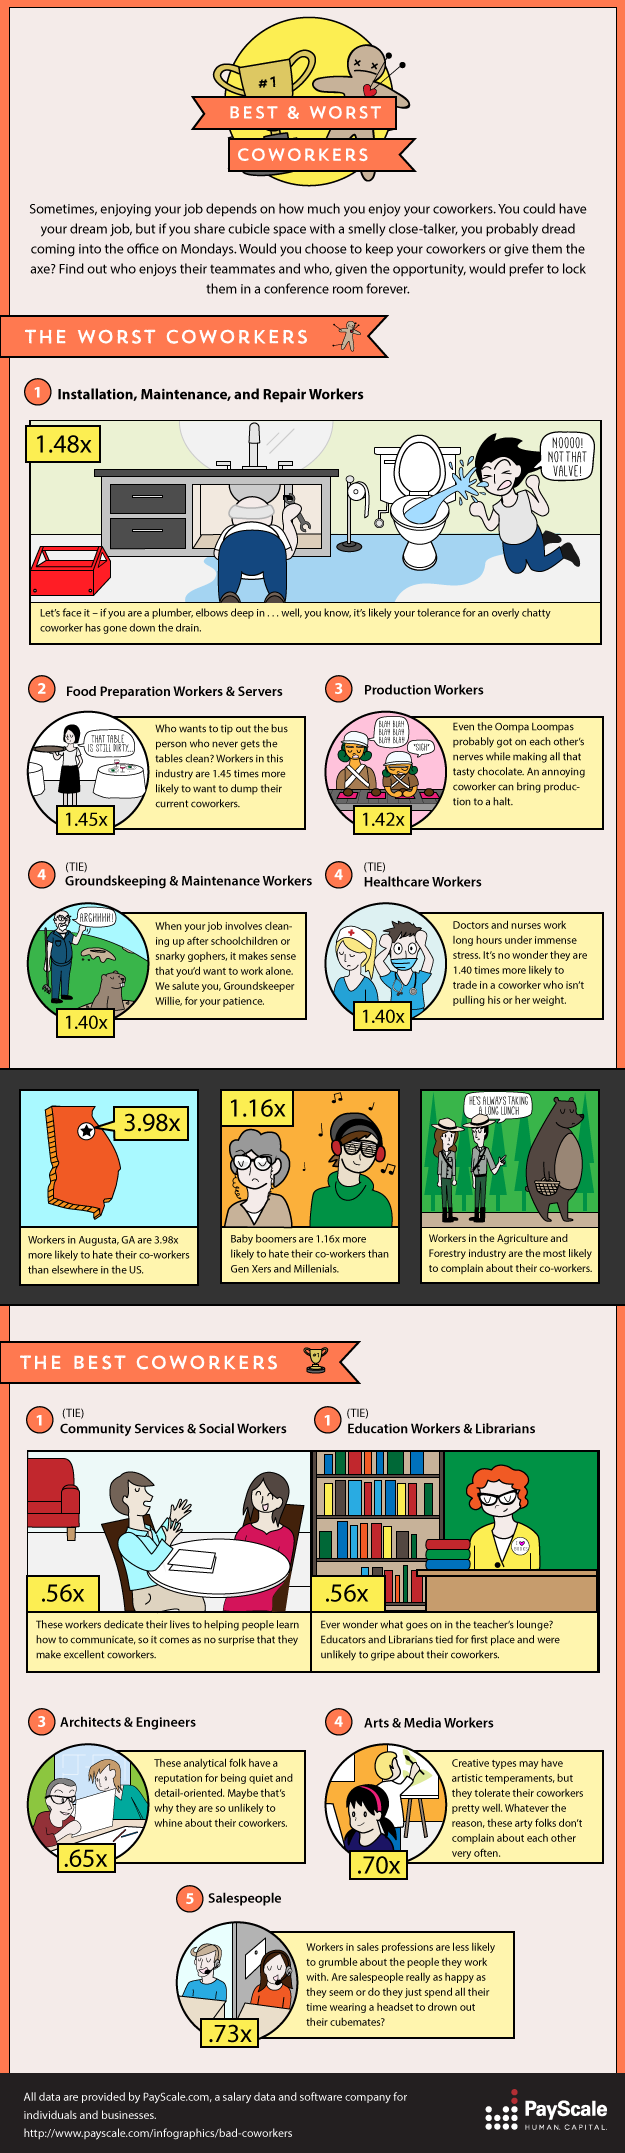 Which Job Has The Best And Worst Coworkers